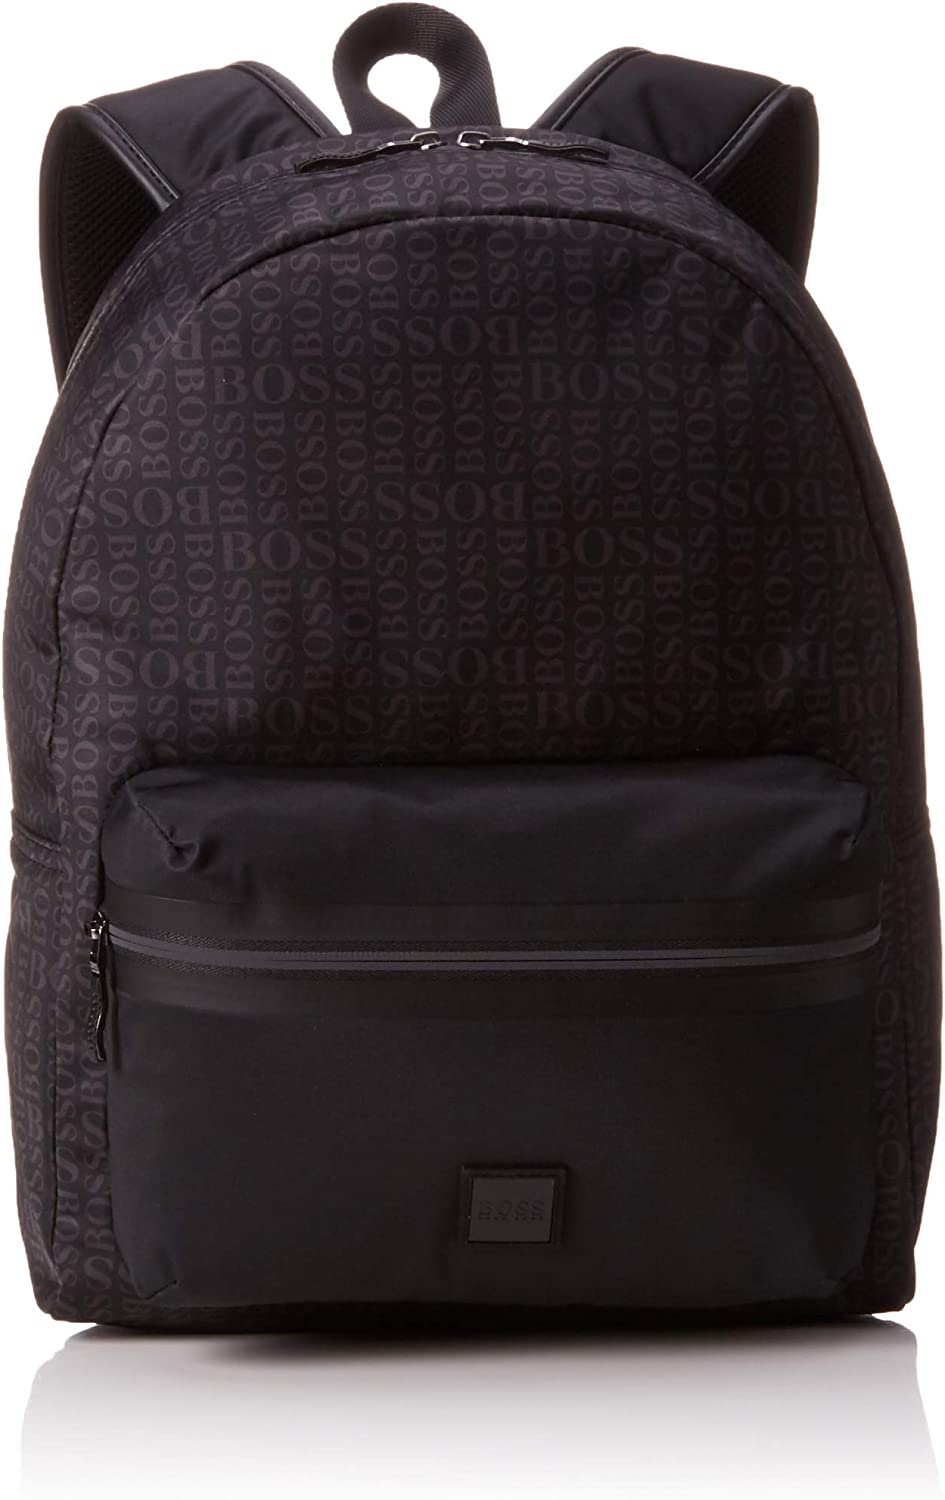 B x H T Noir 12x40x30 cm Black BOSS Lighter/_backpack Sacs /à dos homme